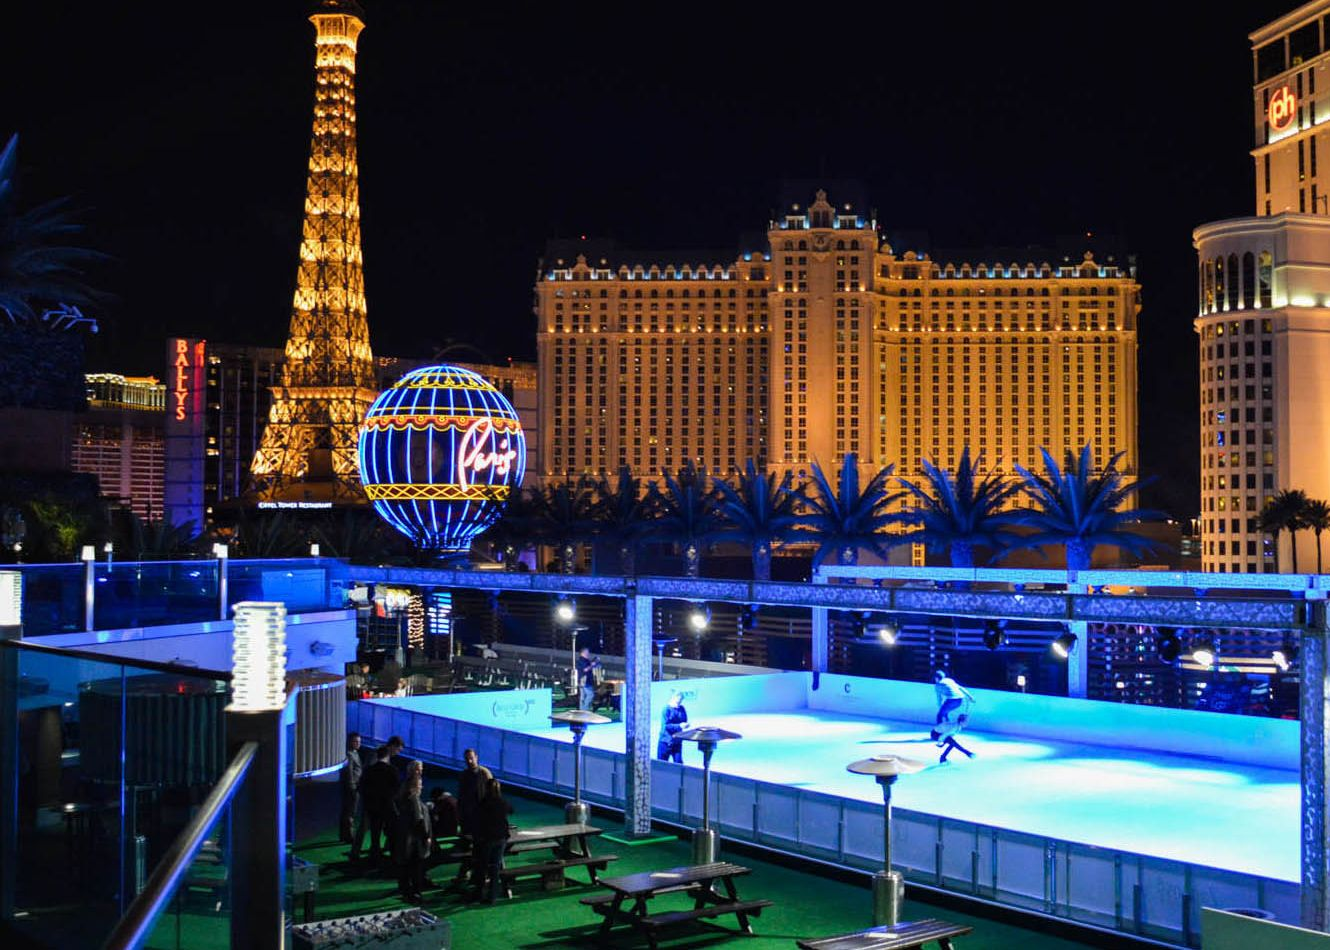 Las Vegas Ice Rink The Ice Rink At The Cosmopolitan Las Vegas Cosmopolitan Las Vegas Las Vegas Christmas In La